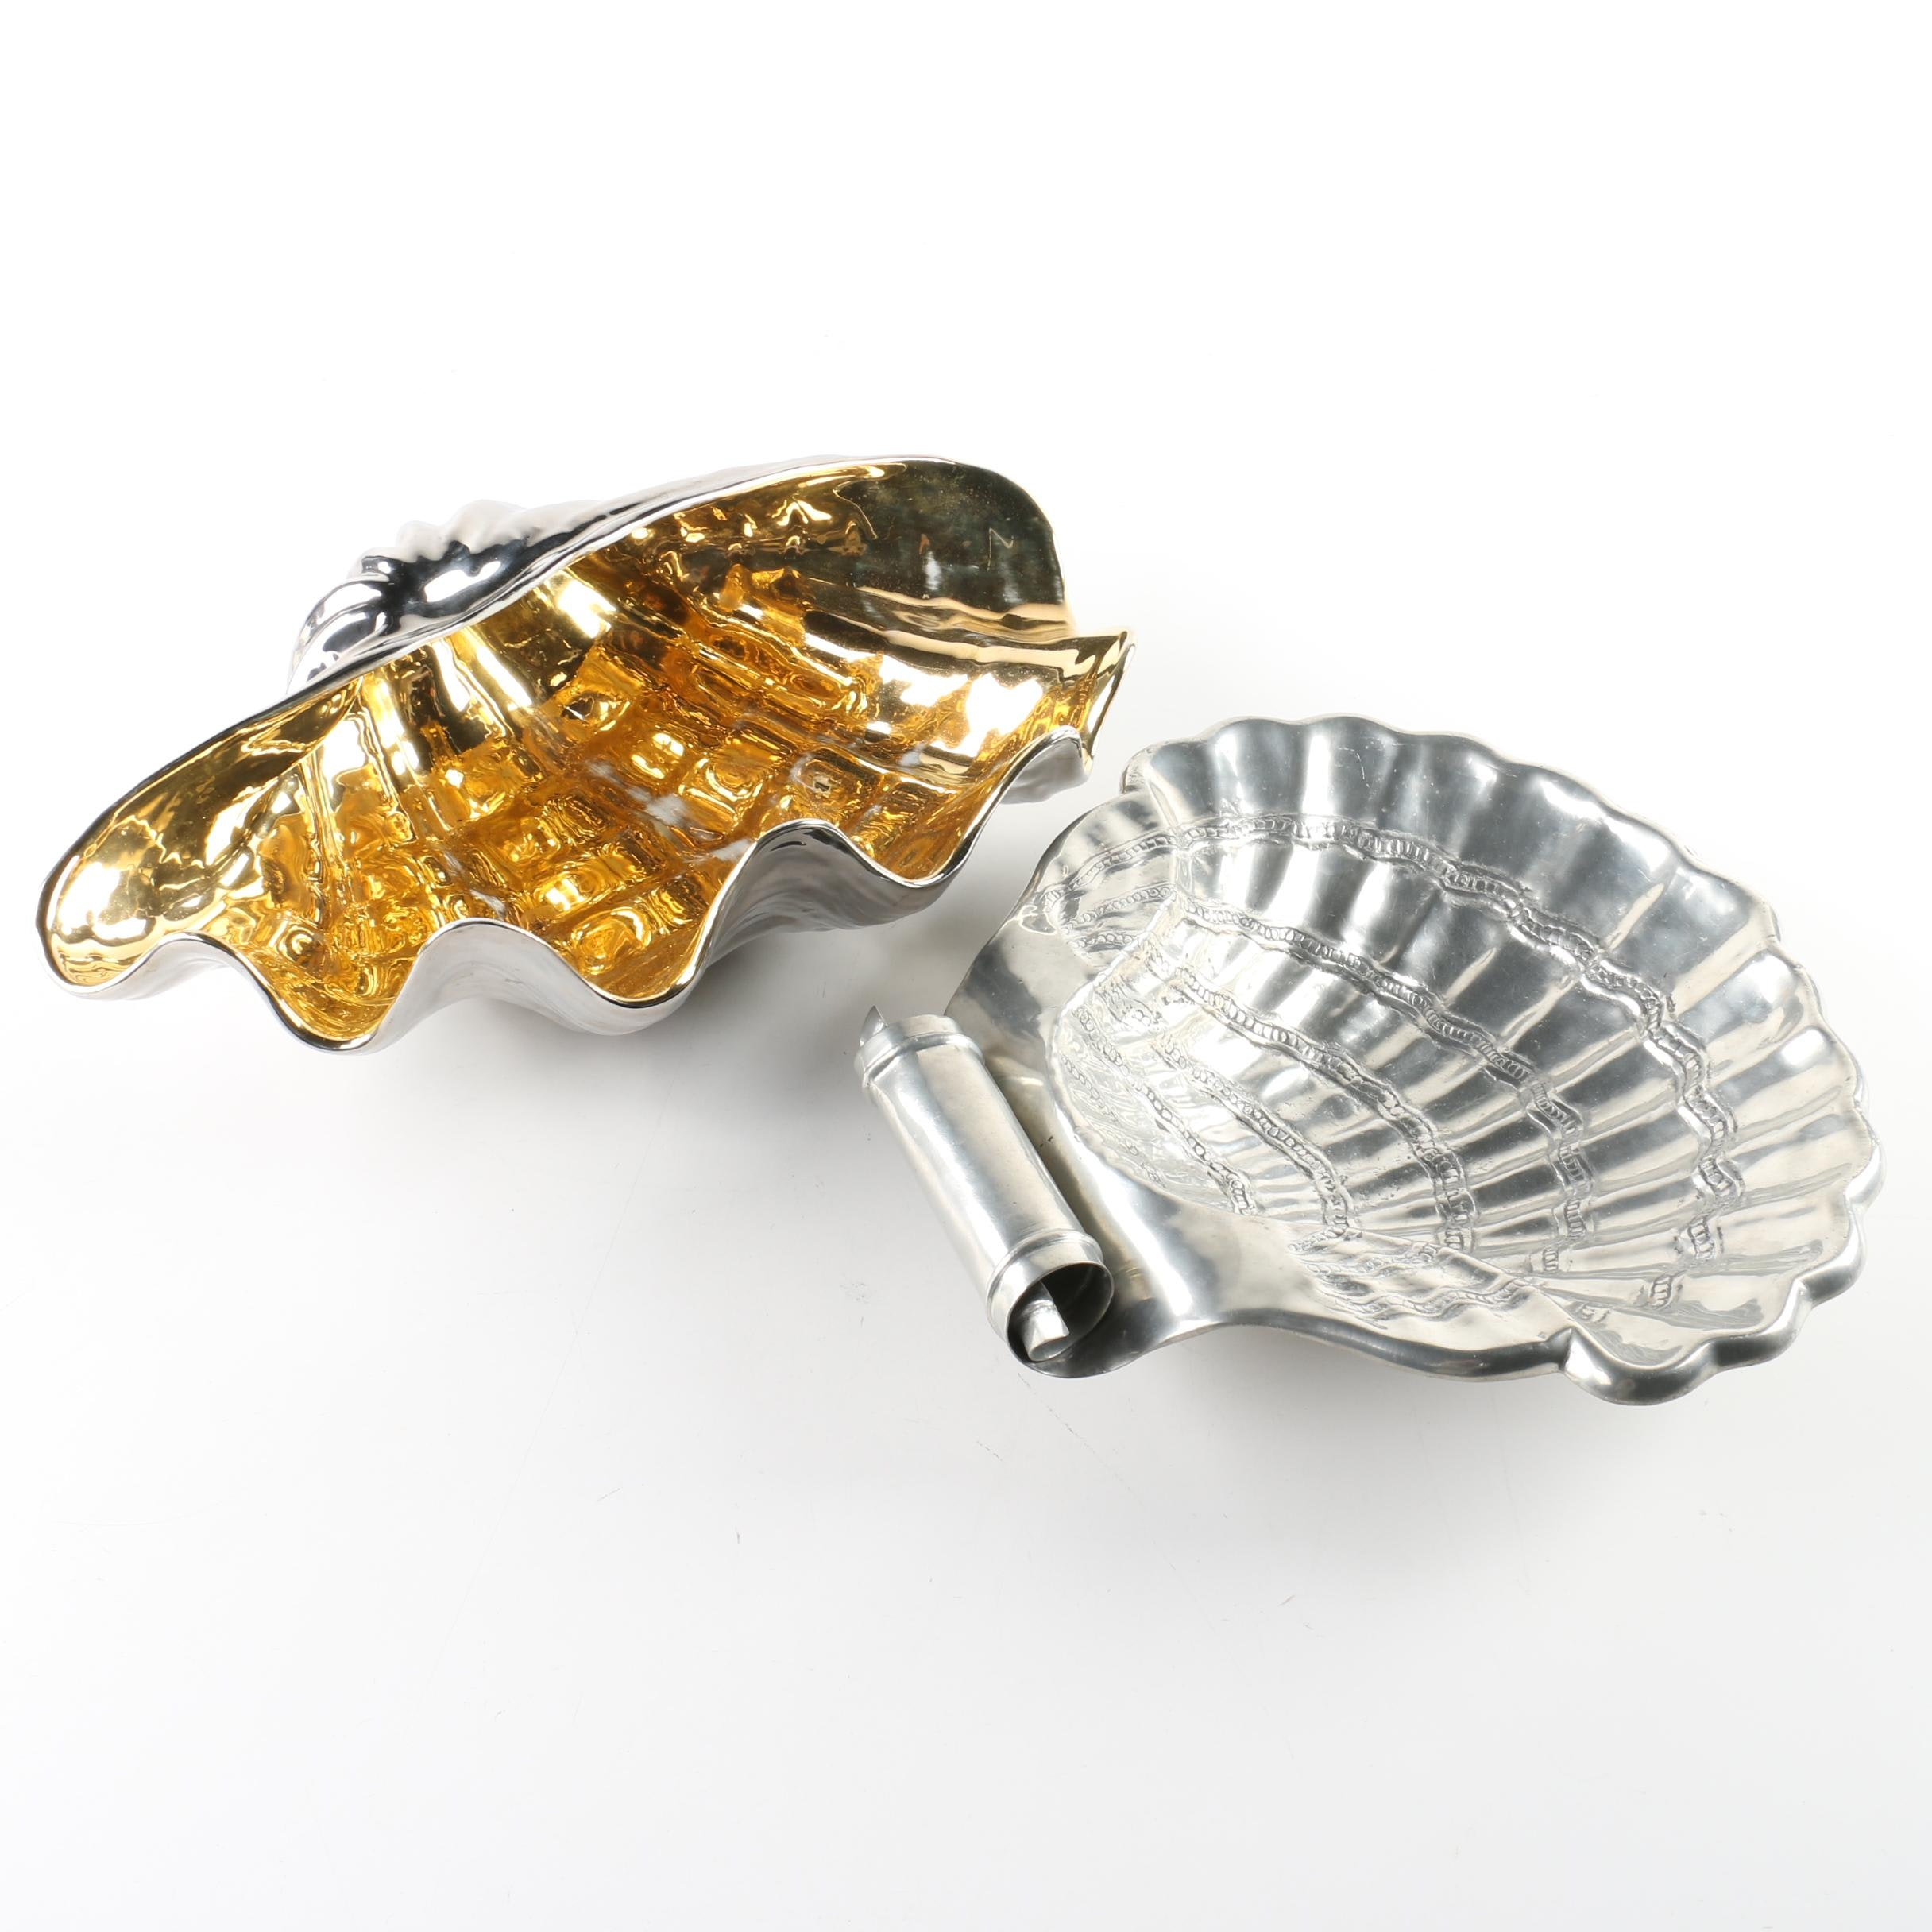 Pewter Scallop Shell Dish with Silver Tone Shell Dish